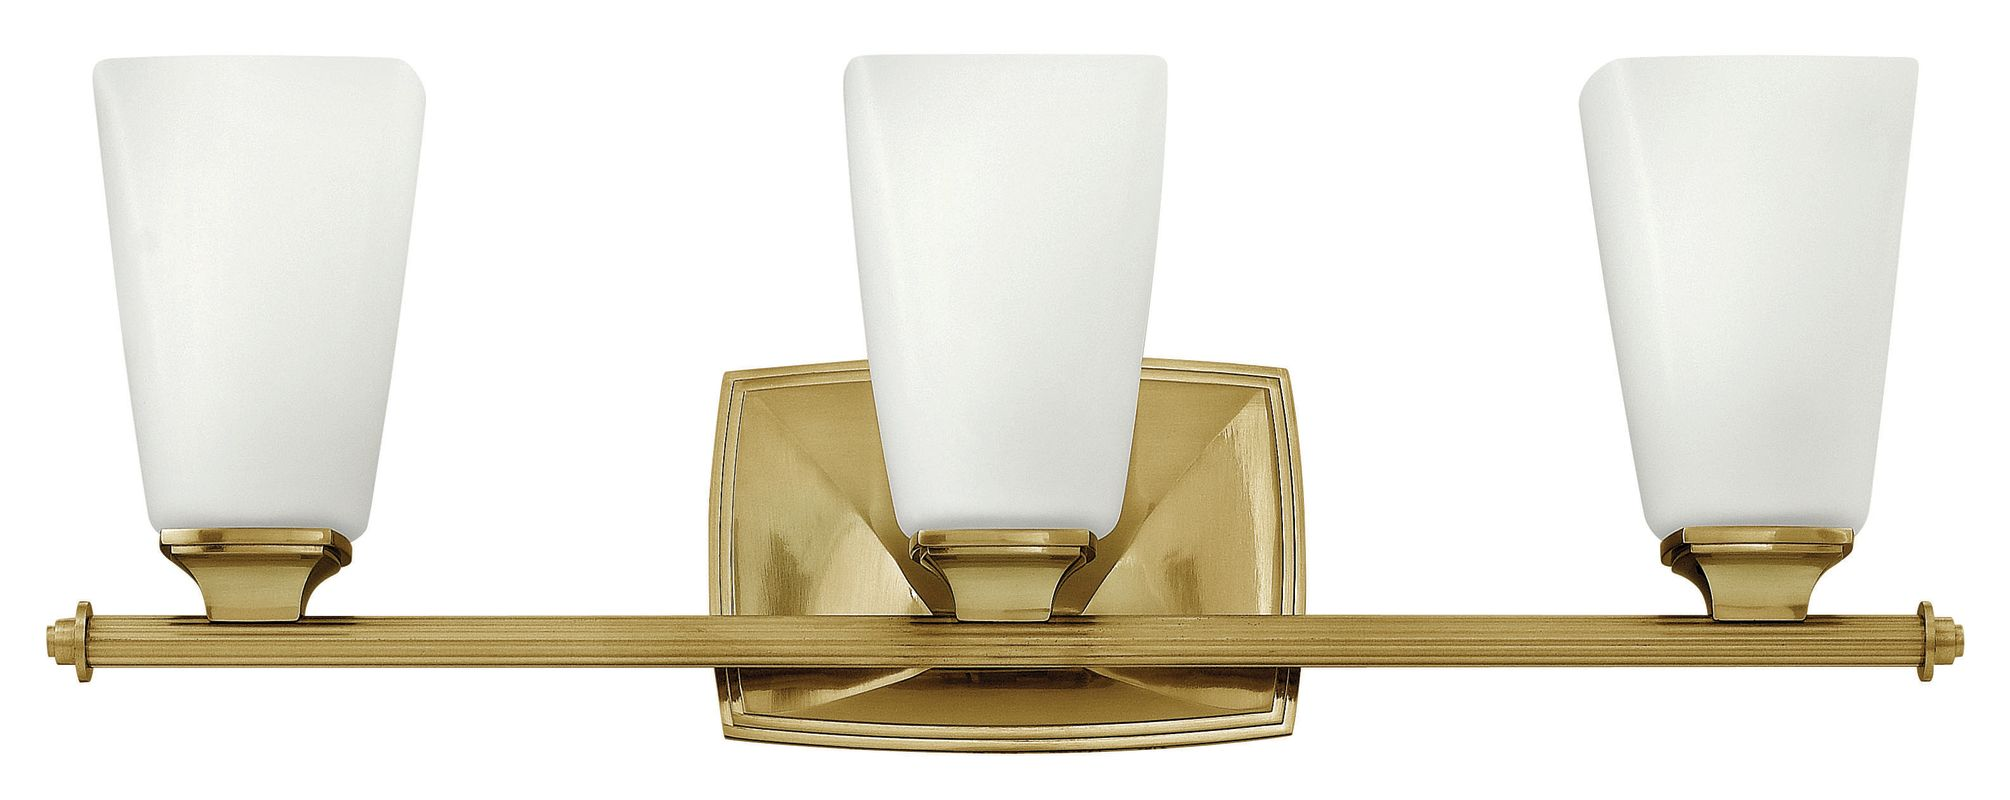 Hinkley Lighting 53013 3 Light Bathroom Vanity Light with Frosted Sale $279.00 ITEM: bci2635504 ID#:53013BC UPC: 640665530162 :